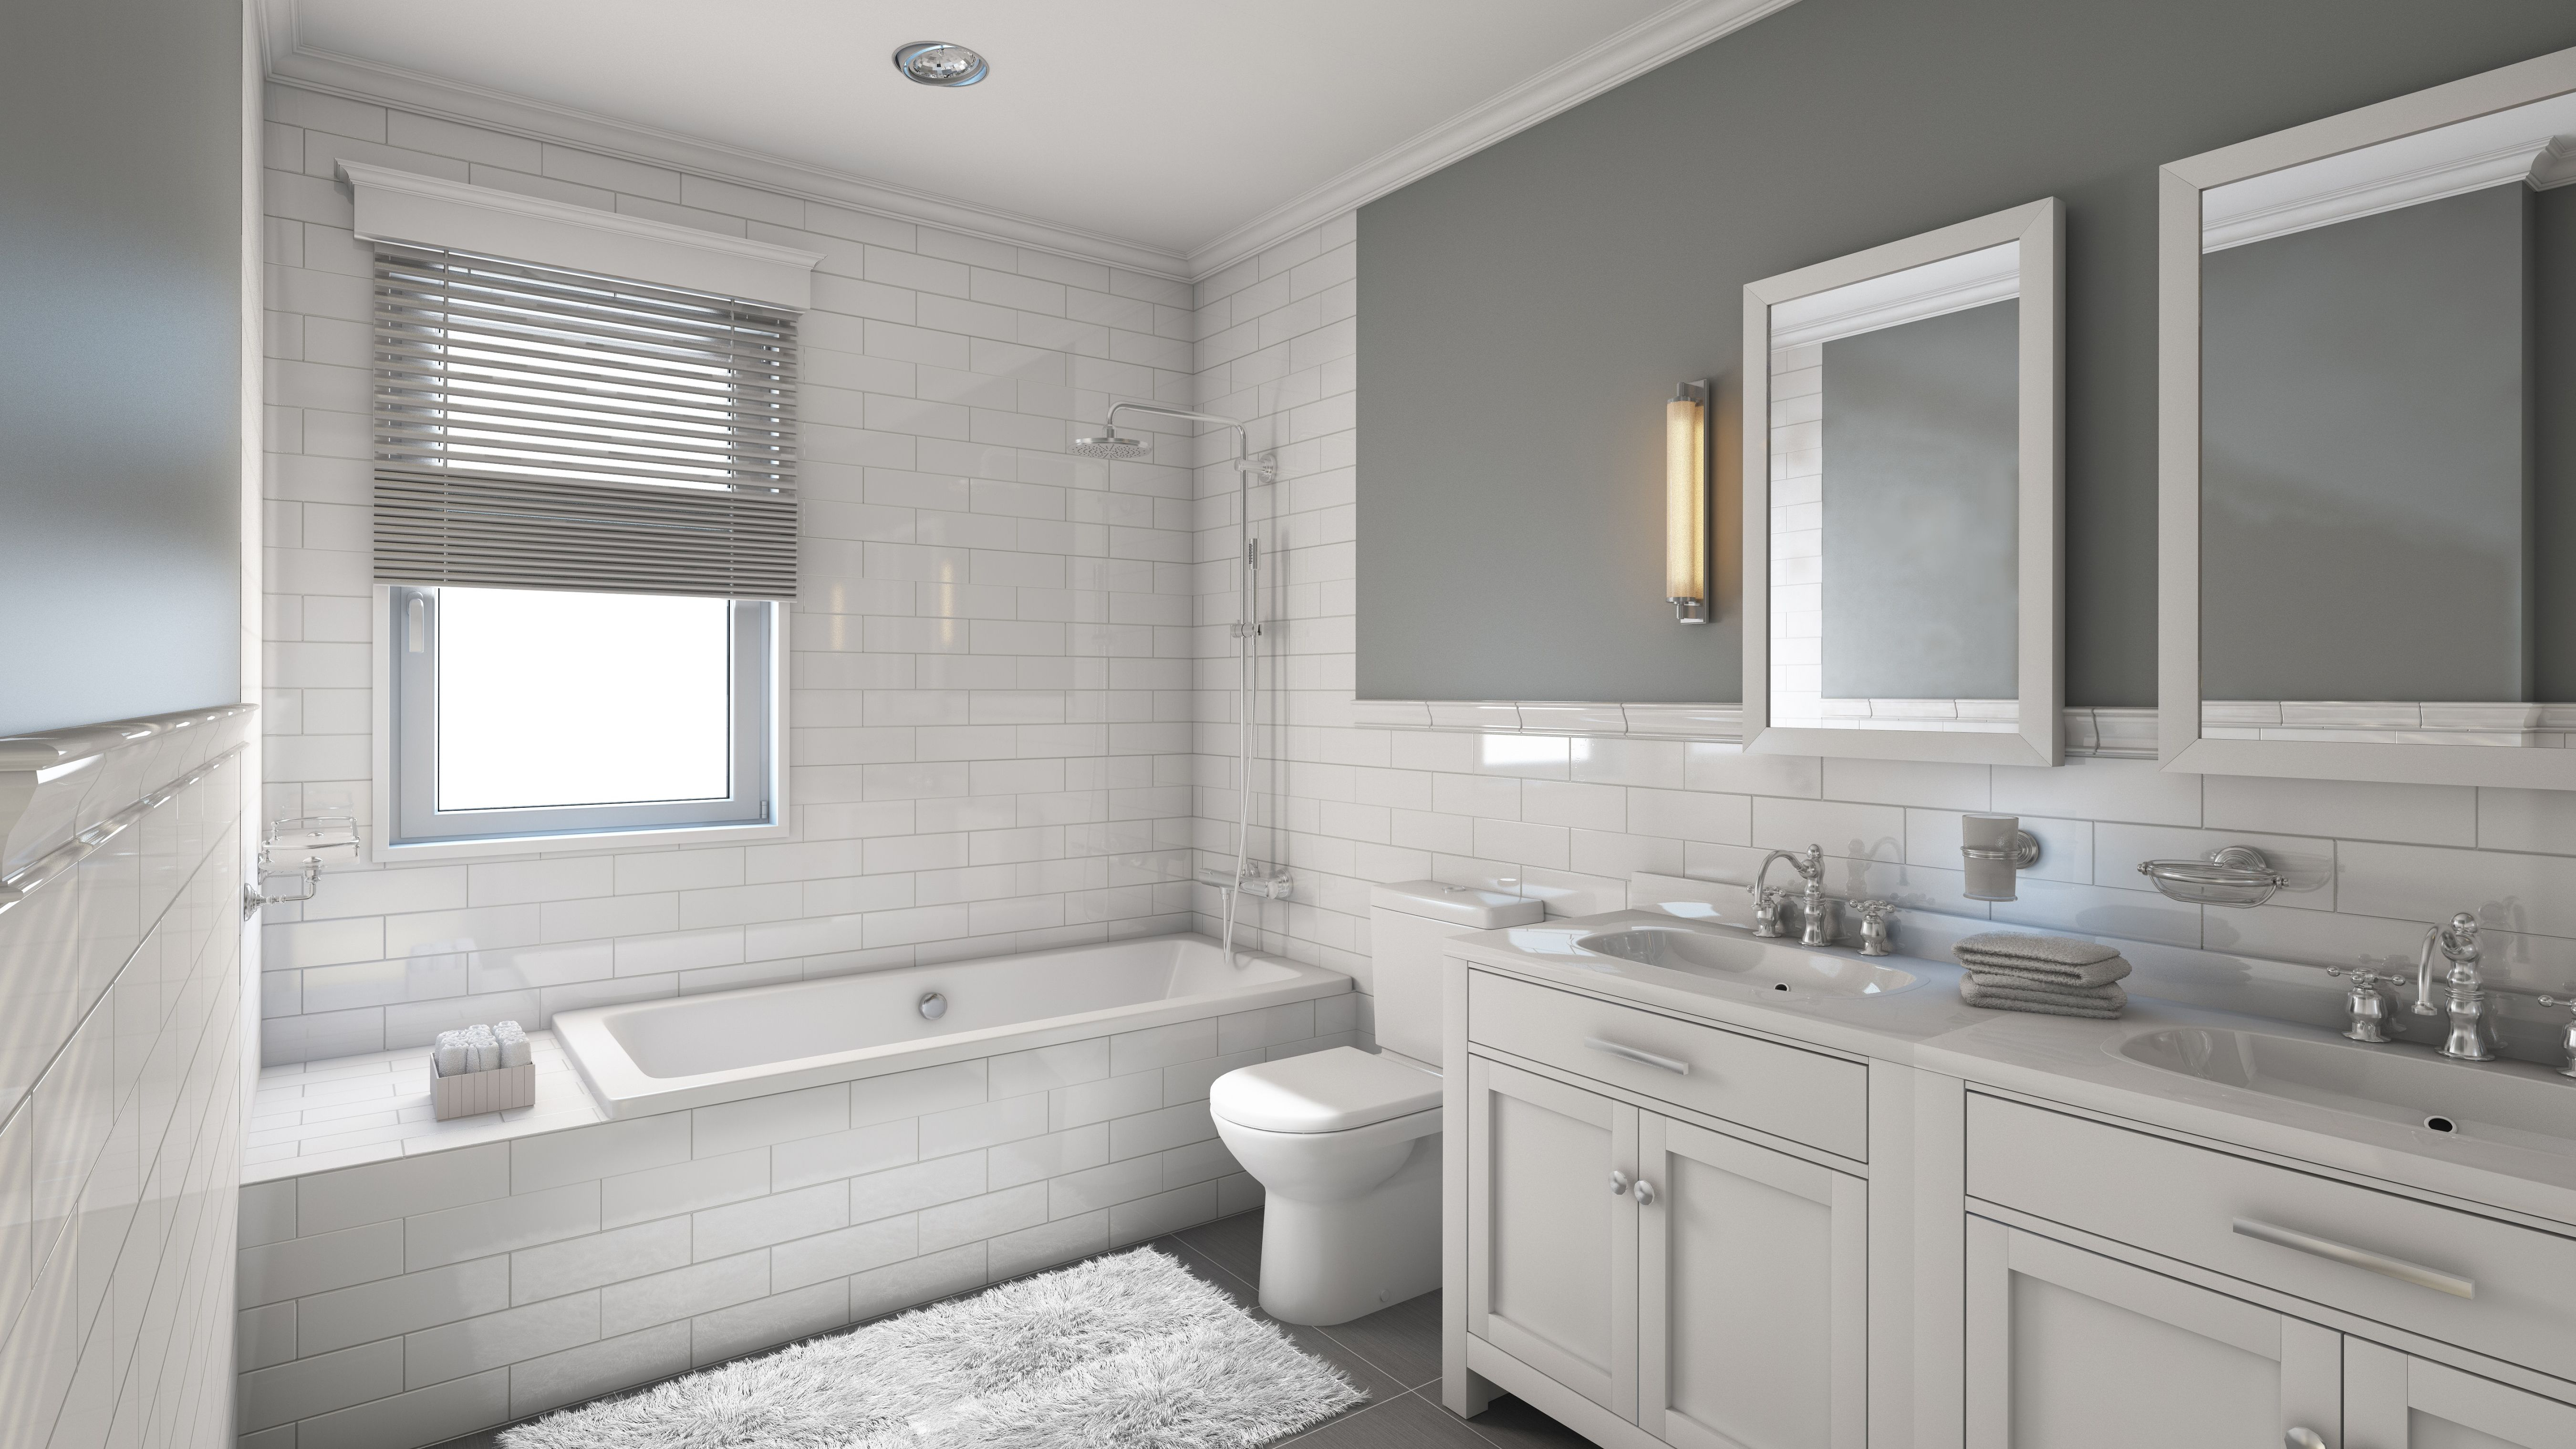 17 Clic Gray And White Bathrooms